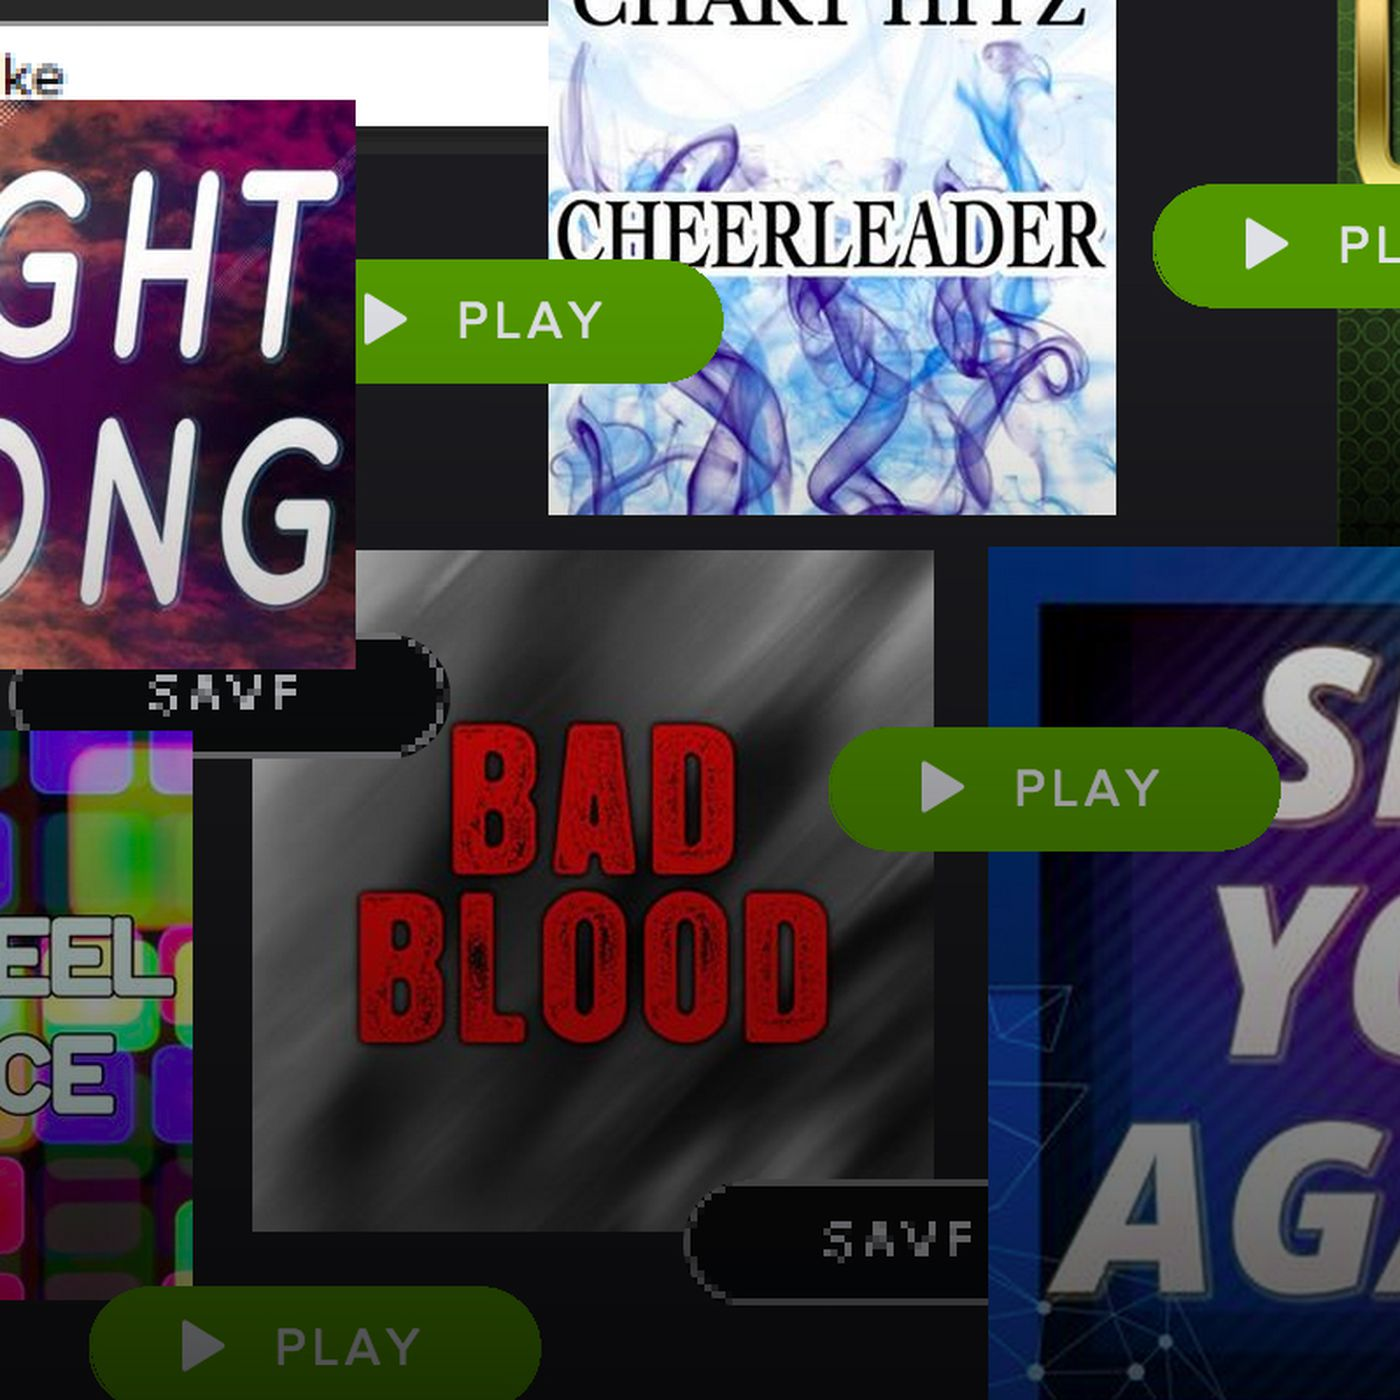 Sounds Like A Hit The Numbers Game Behind Spotify Cover Songs The Verge